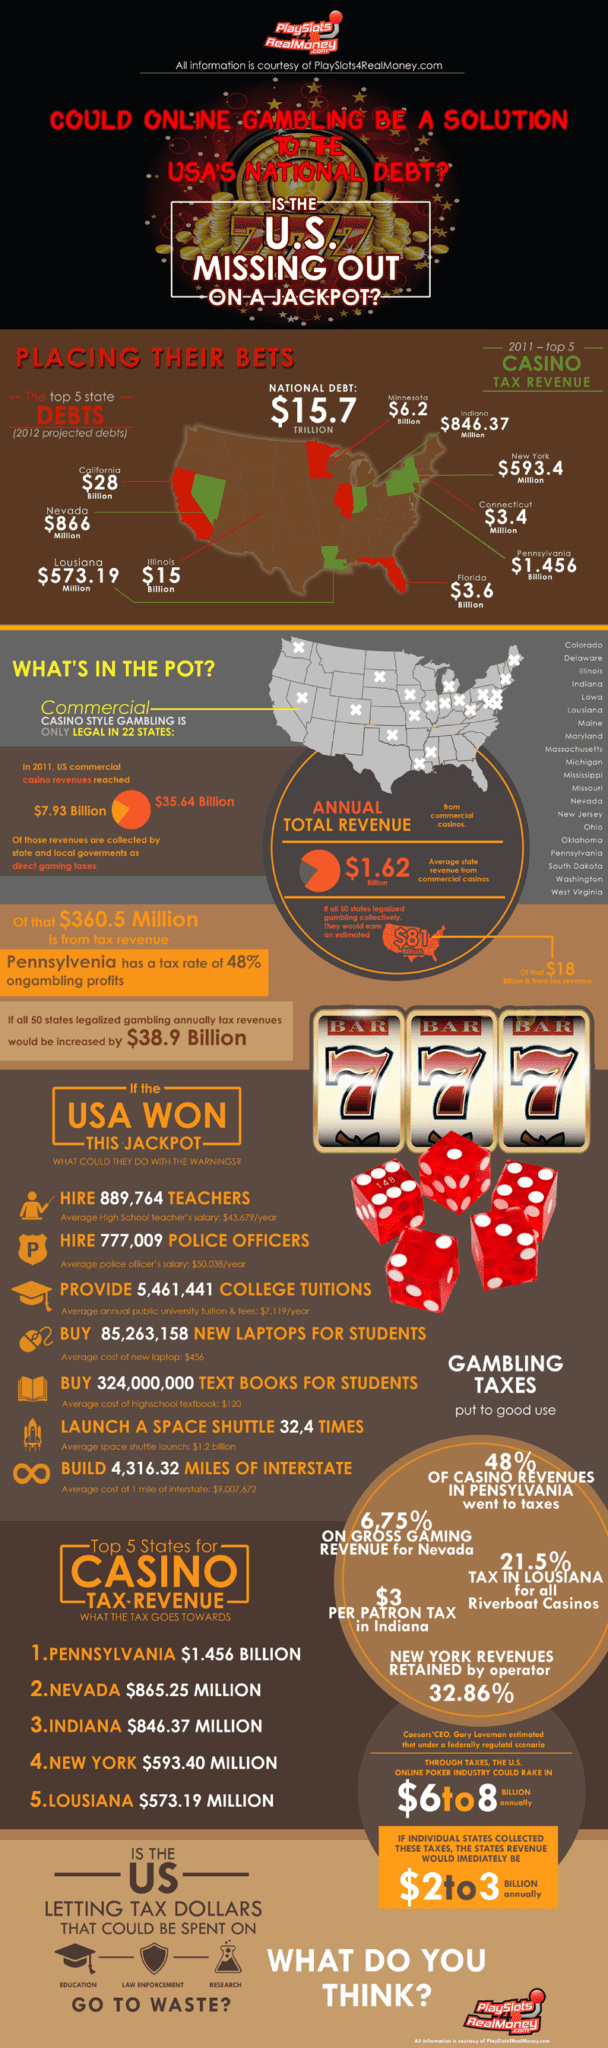 best us casino online spielen casino